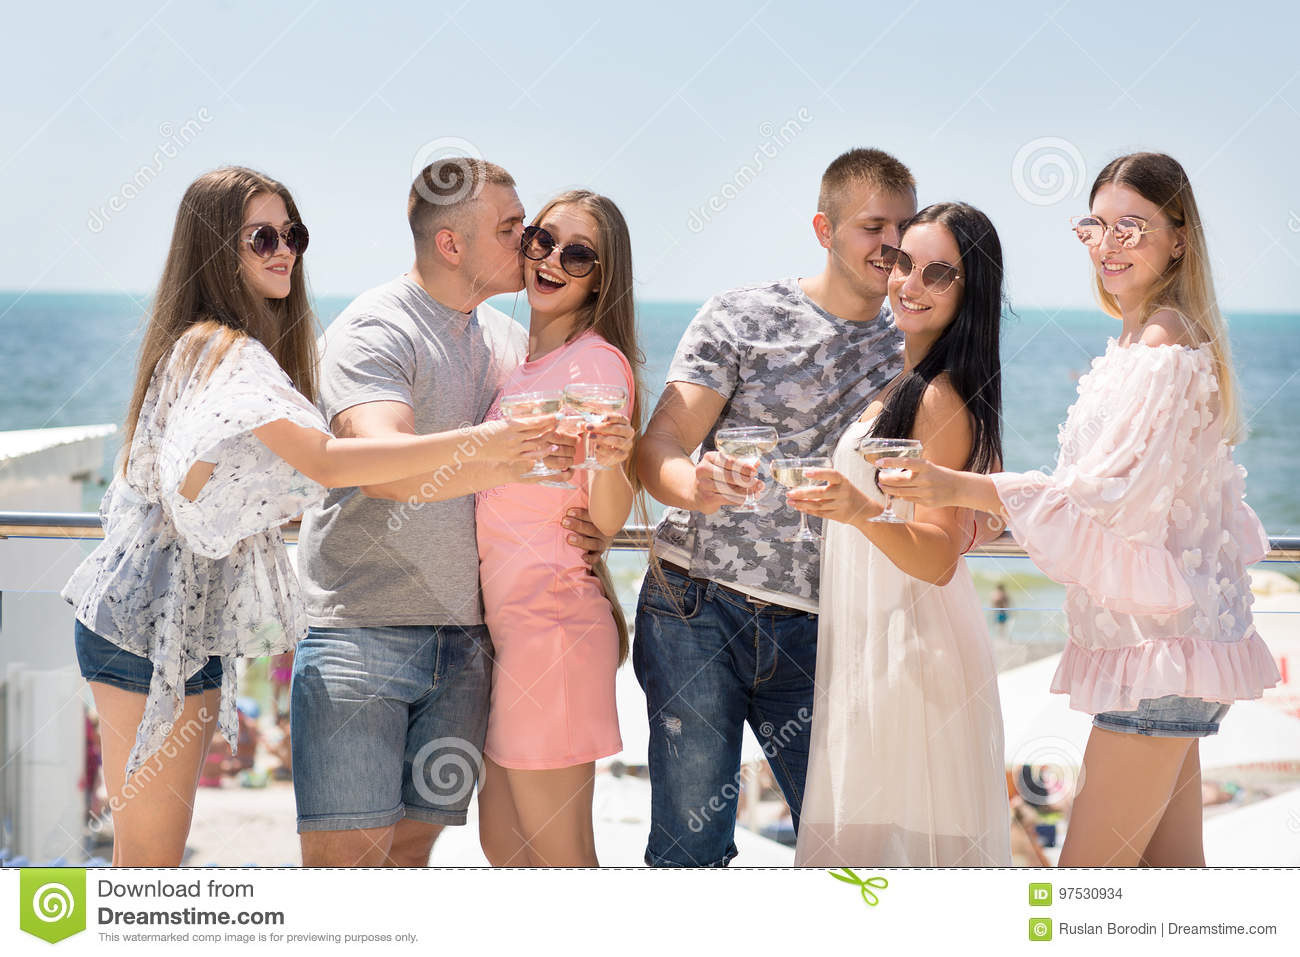 A group of joyful friends relaxing on a vacation. Pretty girls and strong men on a blue sky background. Friendship